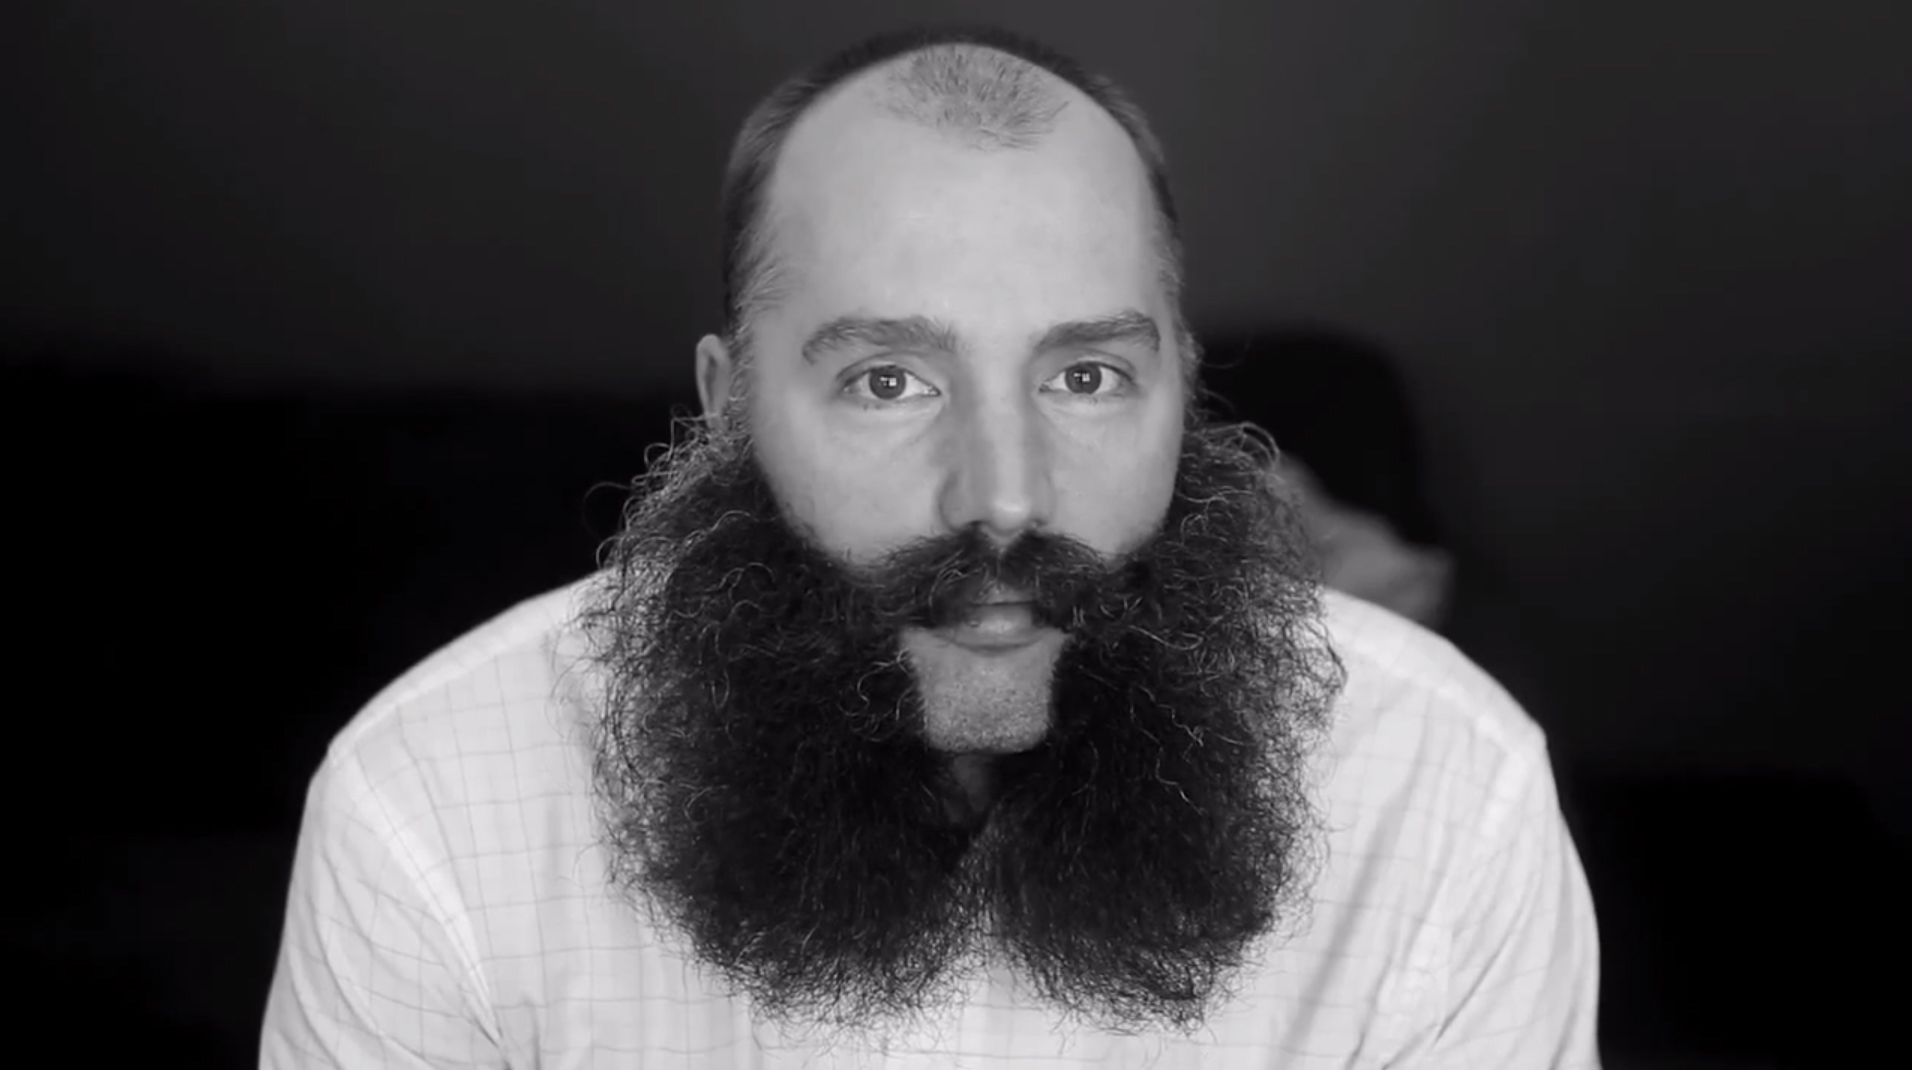 Mike {quote}MJ{quote} Johnson and Chris Sorensen are two of nearly 100 competitors in the 2013 Beard-Off at First Avenue in Minneapolis, Minn. Johnson is the reigning Minnesota Beardsman and hopes to repeat in the fourth-annual contest.